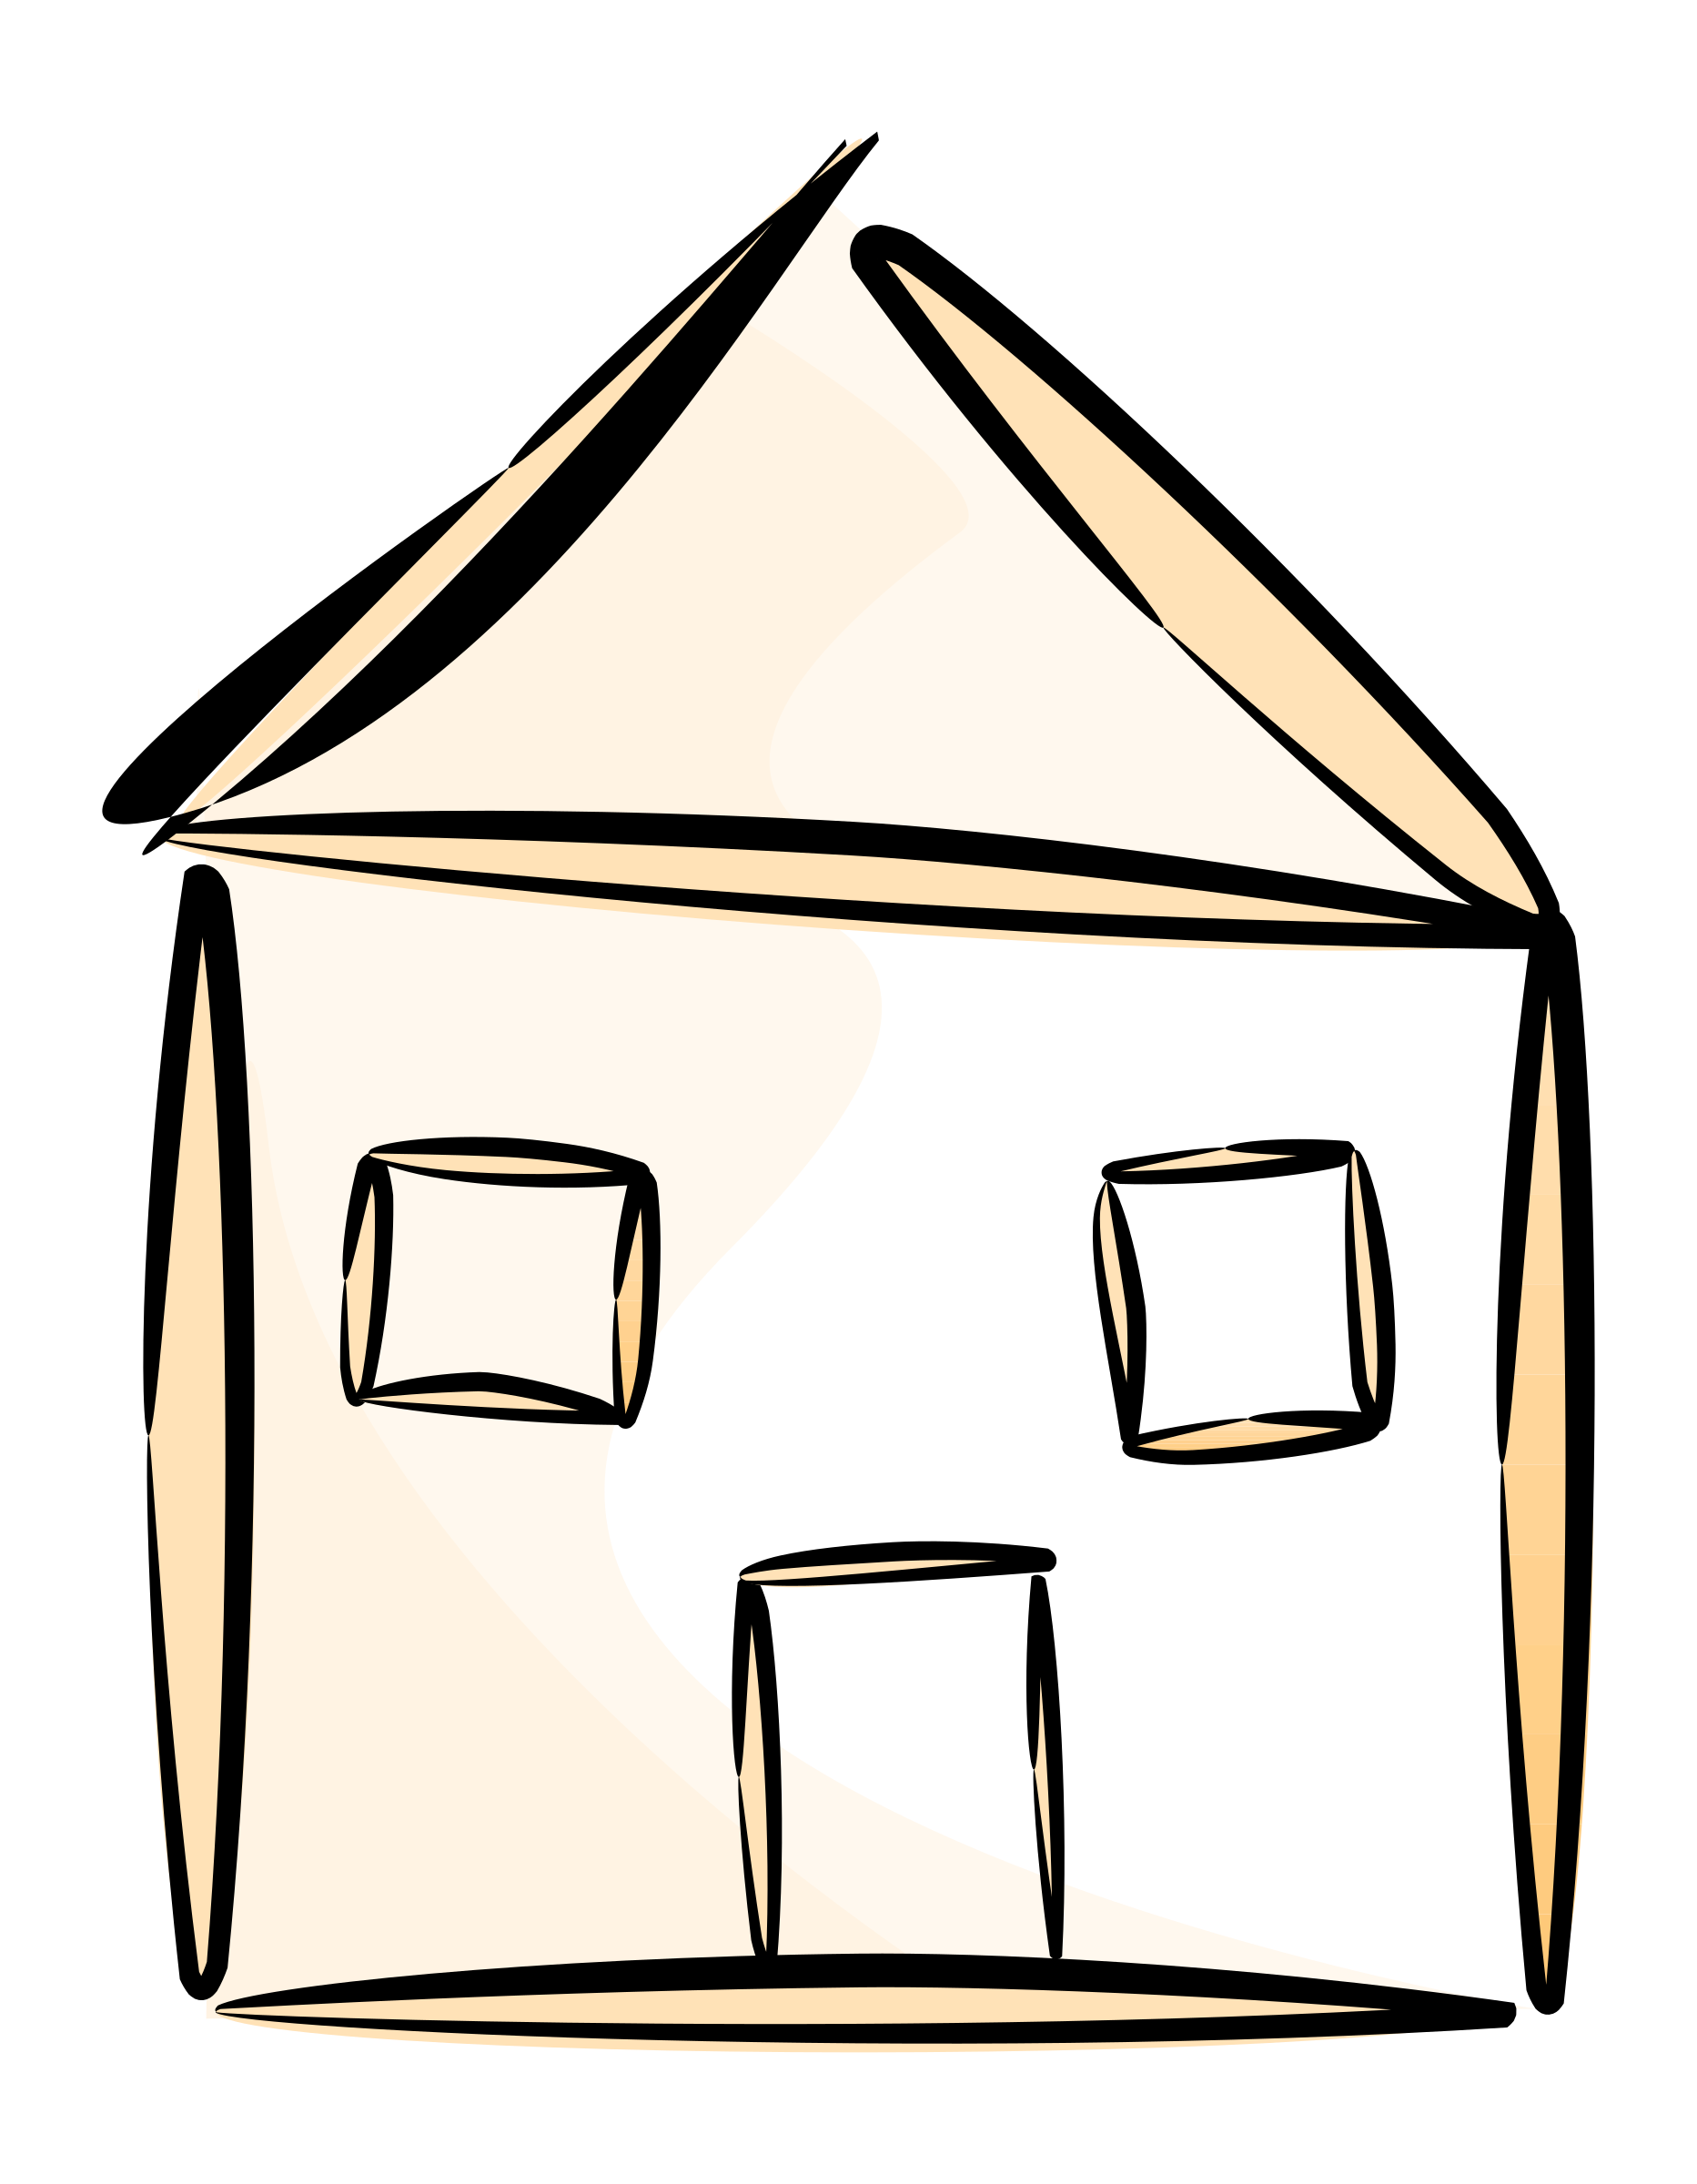 Stylized house clipart vector stock Clipart - stylized house vector stock